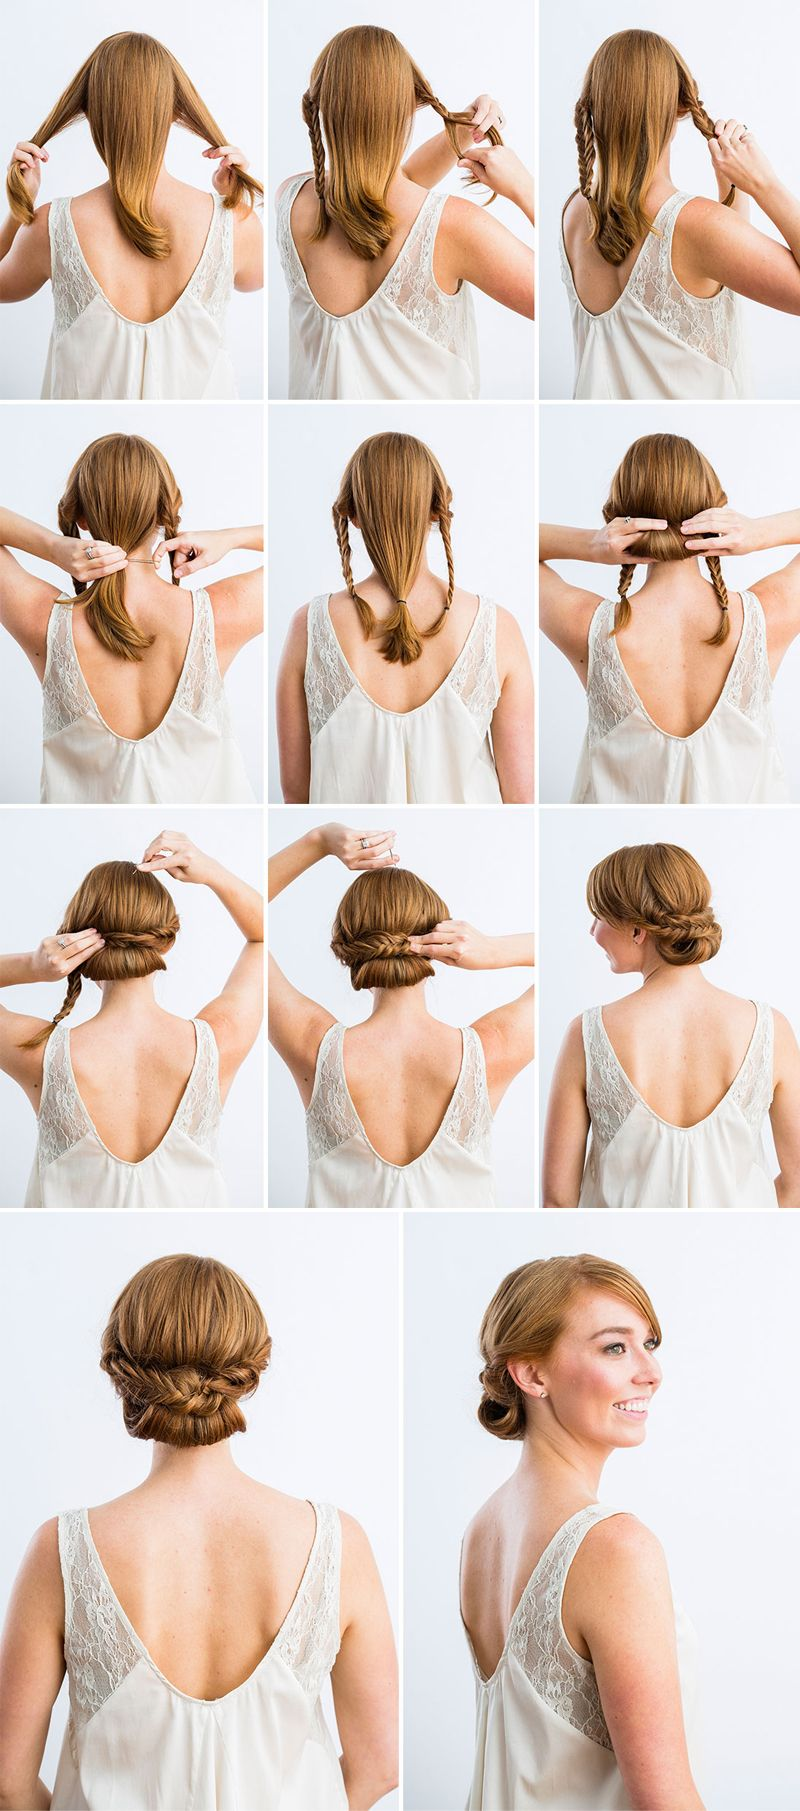 10 best diy wedding hairstyles with tutorials | diy wedding hair